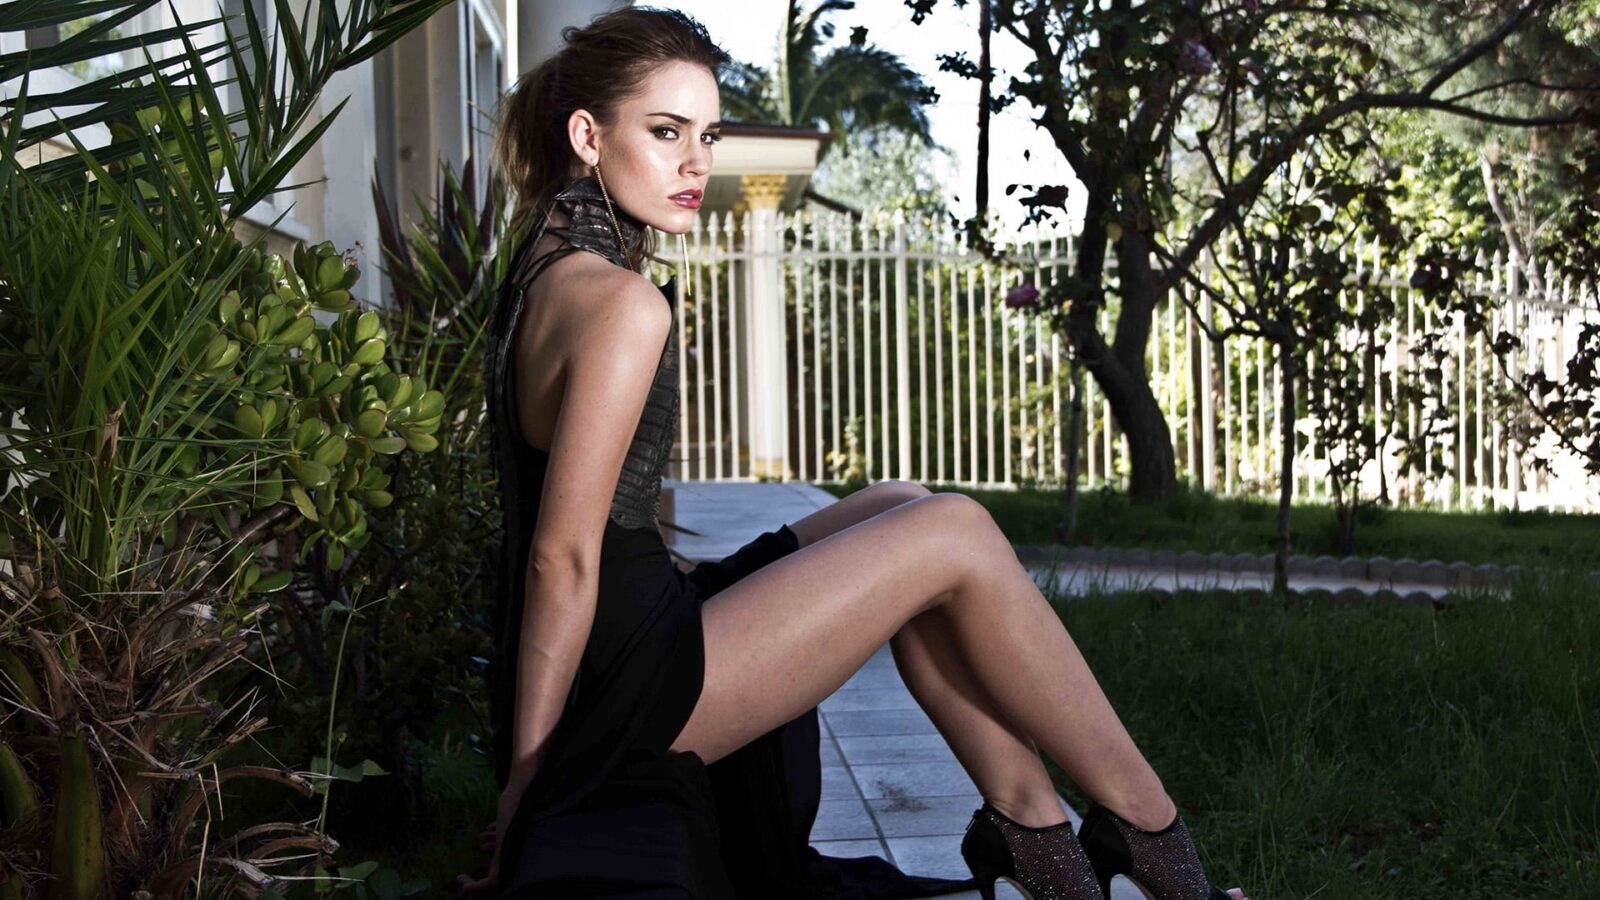 Hd Wallpapers Of Girls And Cars Christa B Allen Hd Wallpapers Free Download